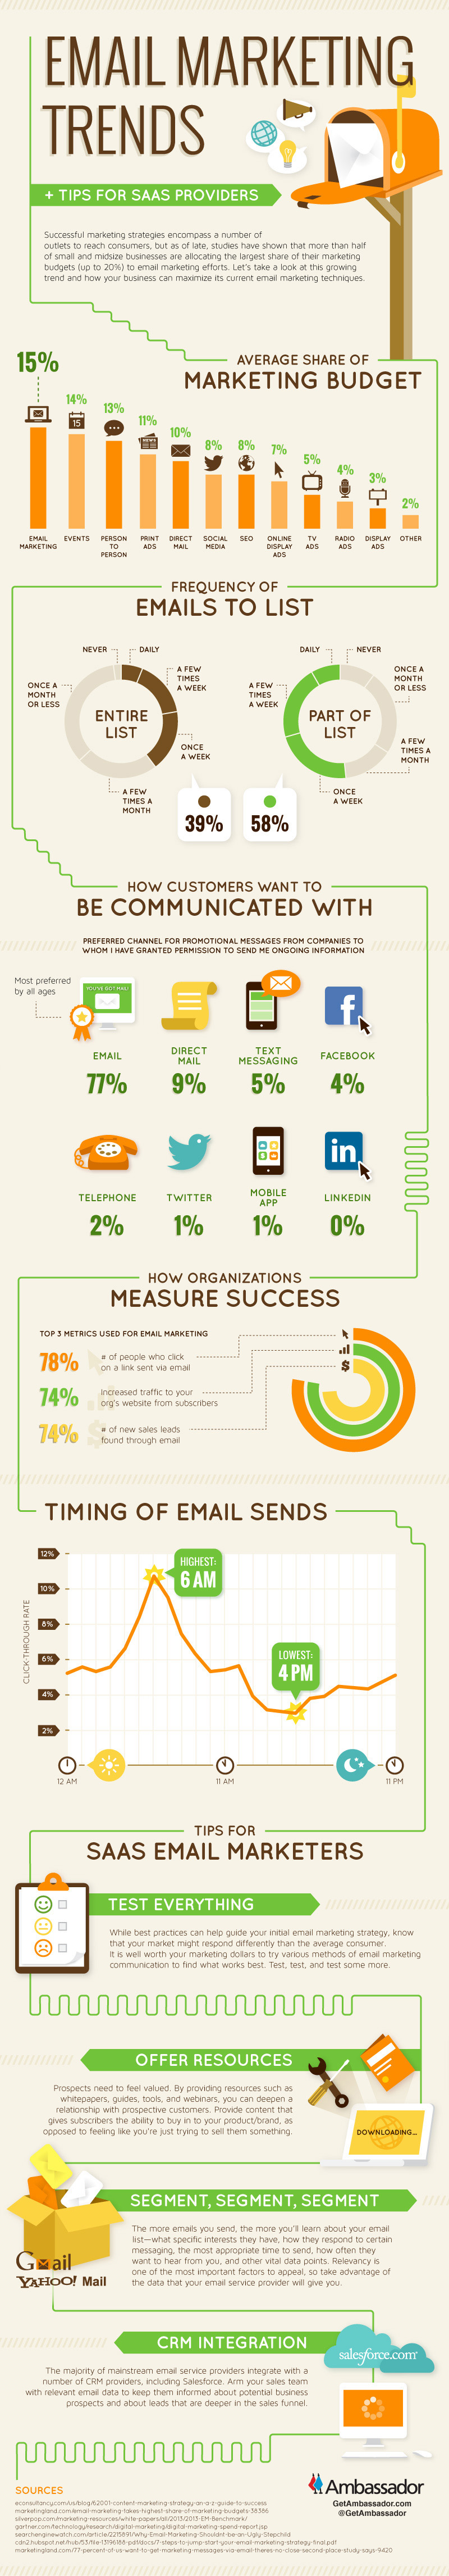 Email Marketing Trends + Tips for SaaS Providers